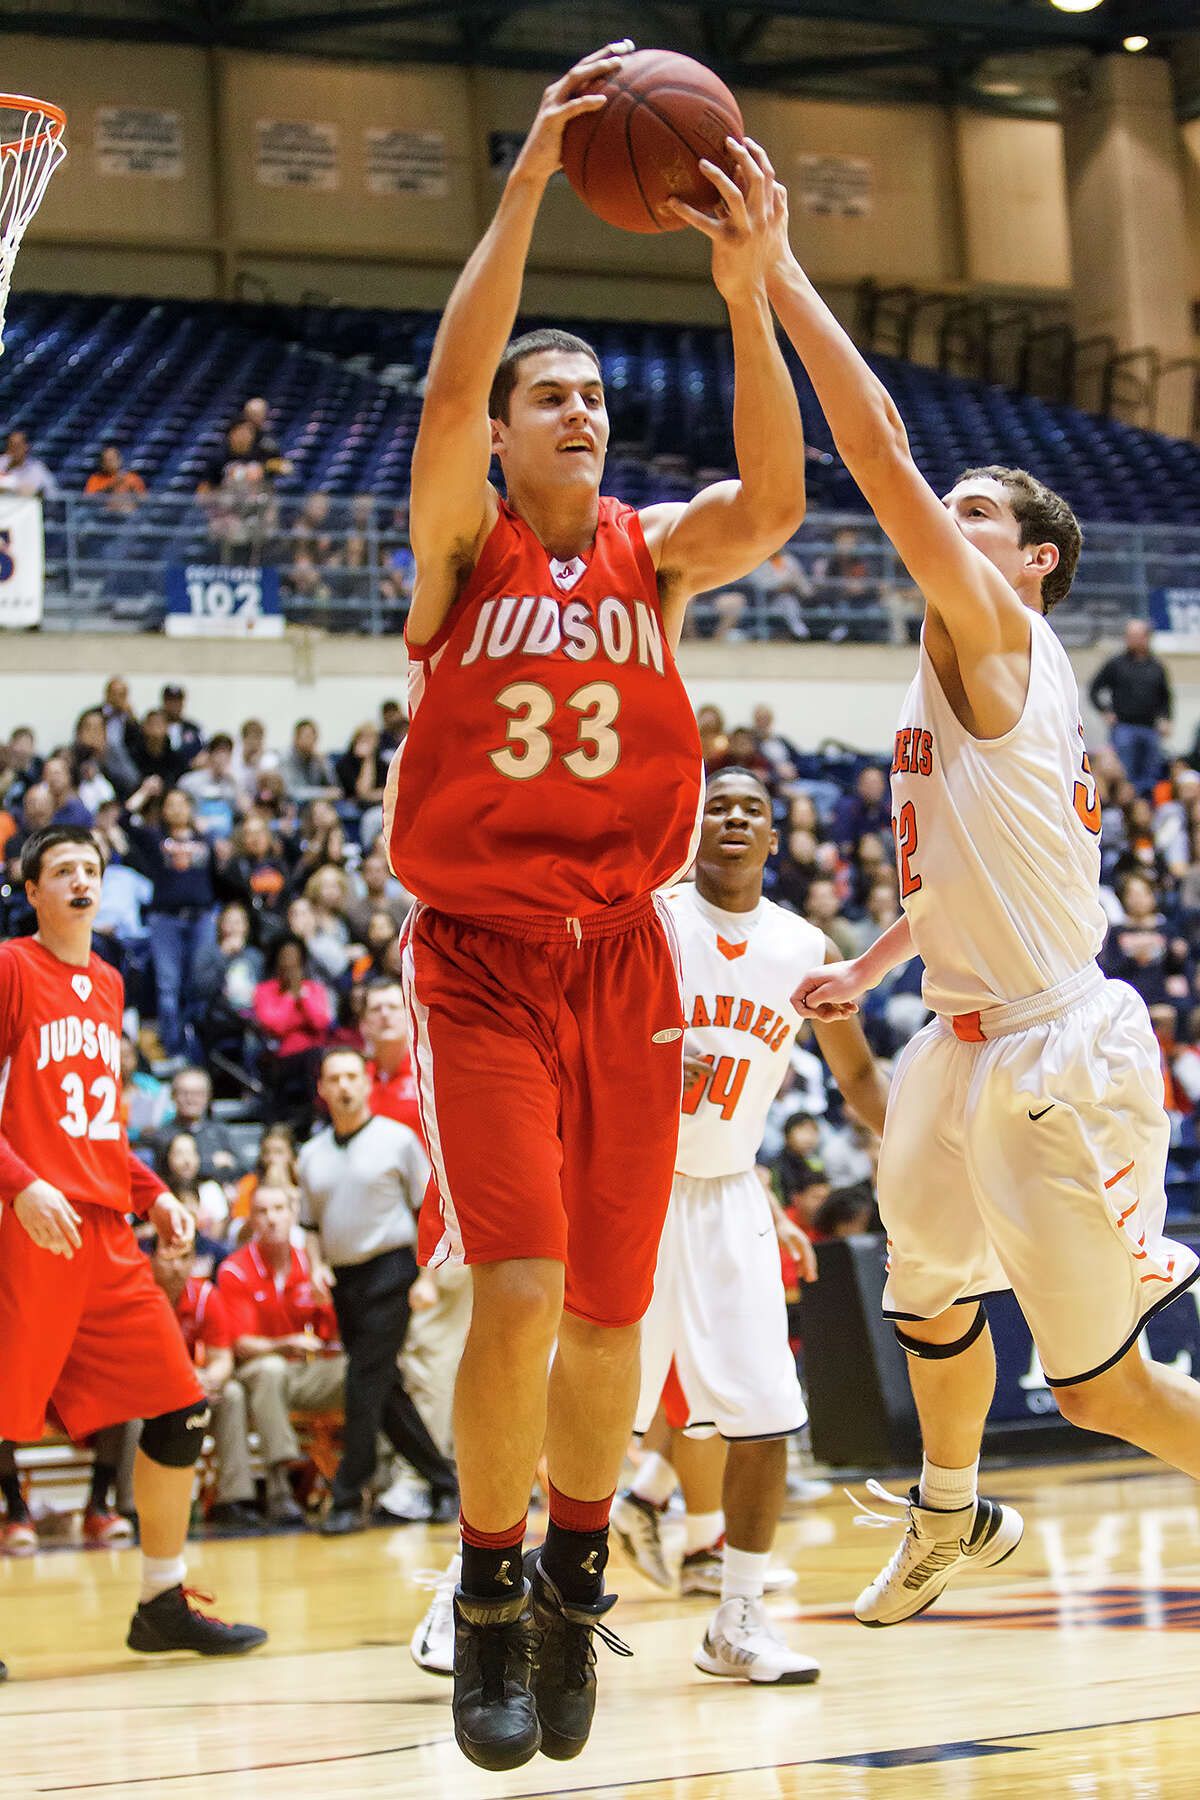 Judson's David Wacker (center) comes down with a rebound despite the efforts of Brandeis' Jared Thompson during the first half of their Class 5A boys basketball third round game at the UTSA Convocation Center on Tuesday, Feb. 26, 2013. Brandeis won the game 60-53.